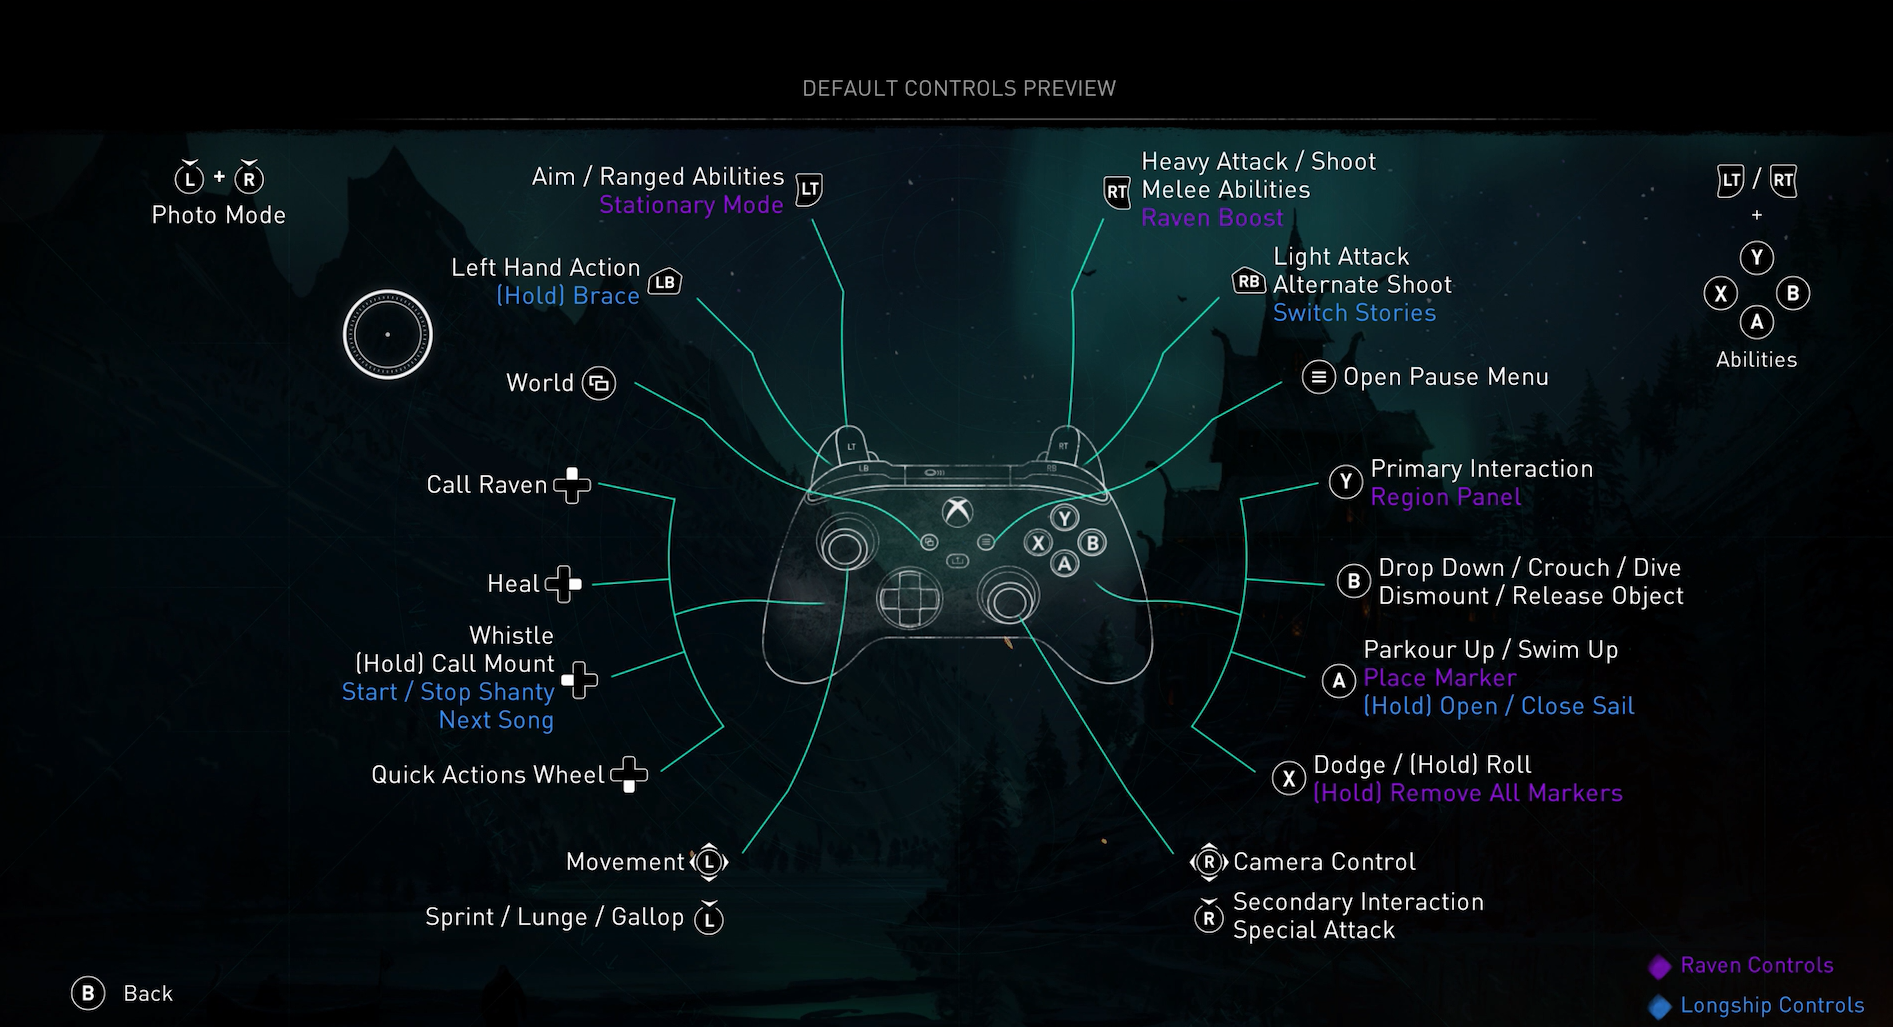 A screenshot showing the default controls of Assassins Creed Valhalla.